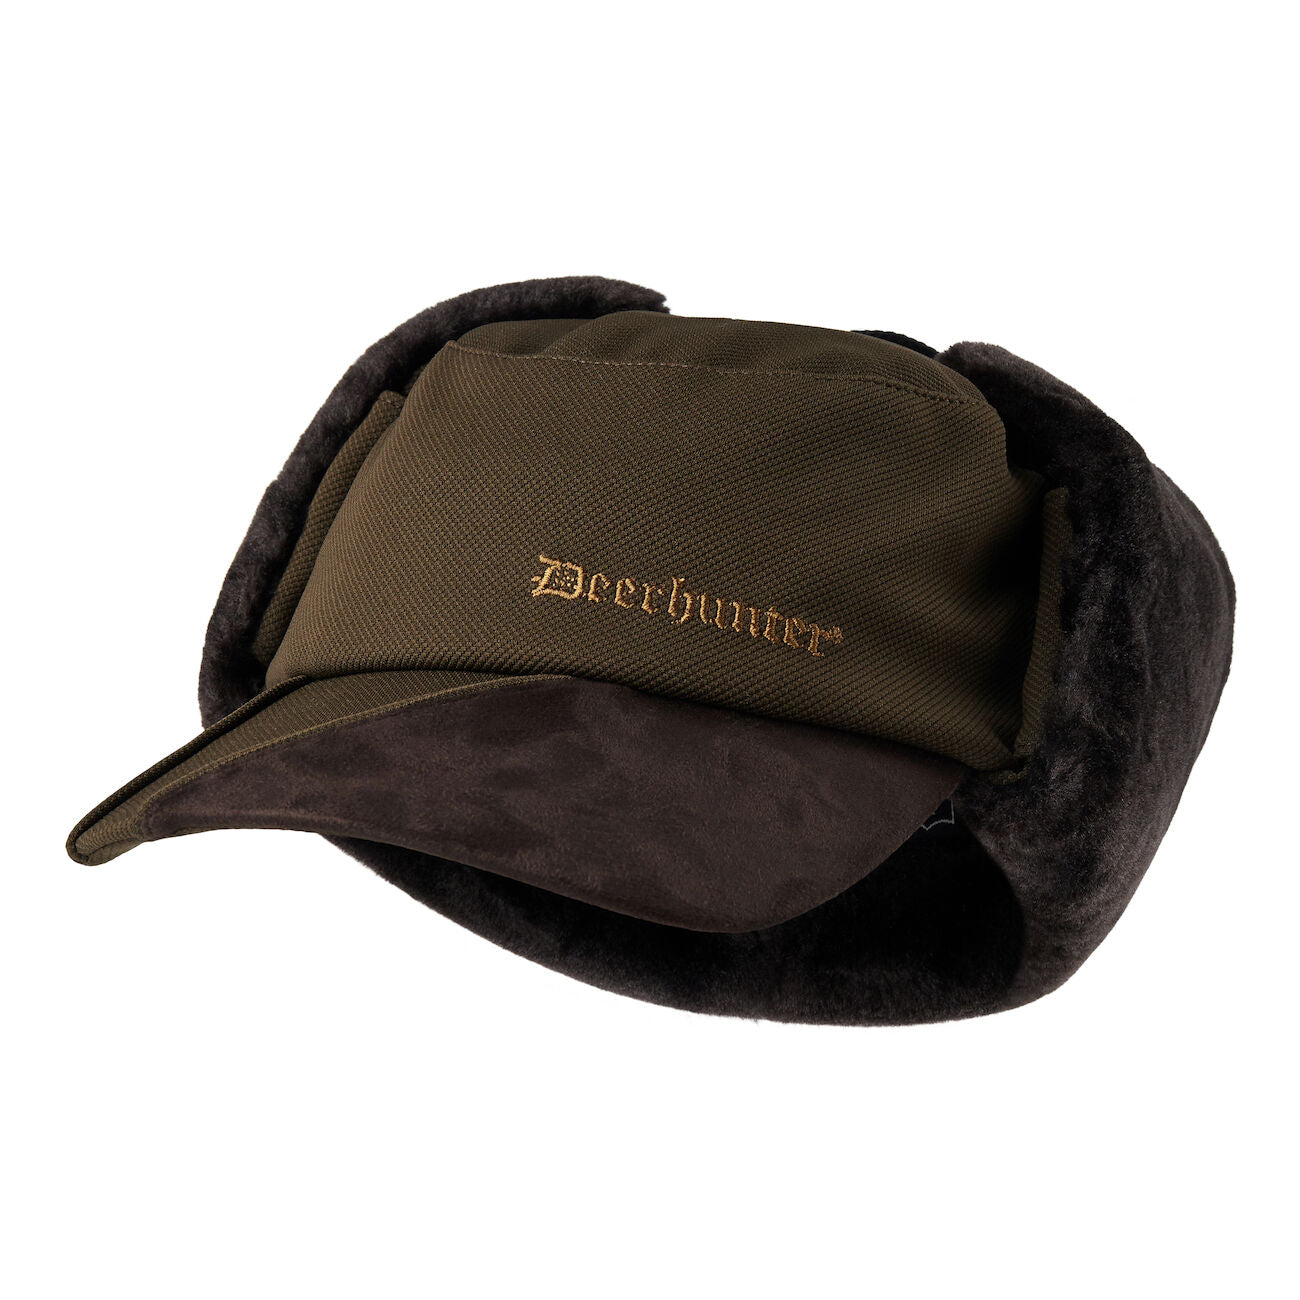 Deerhunter Muflon Winter Hat - Art Green